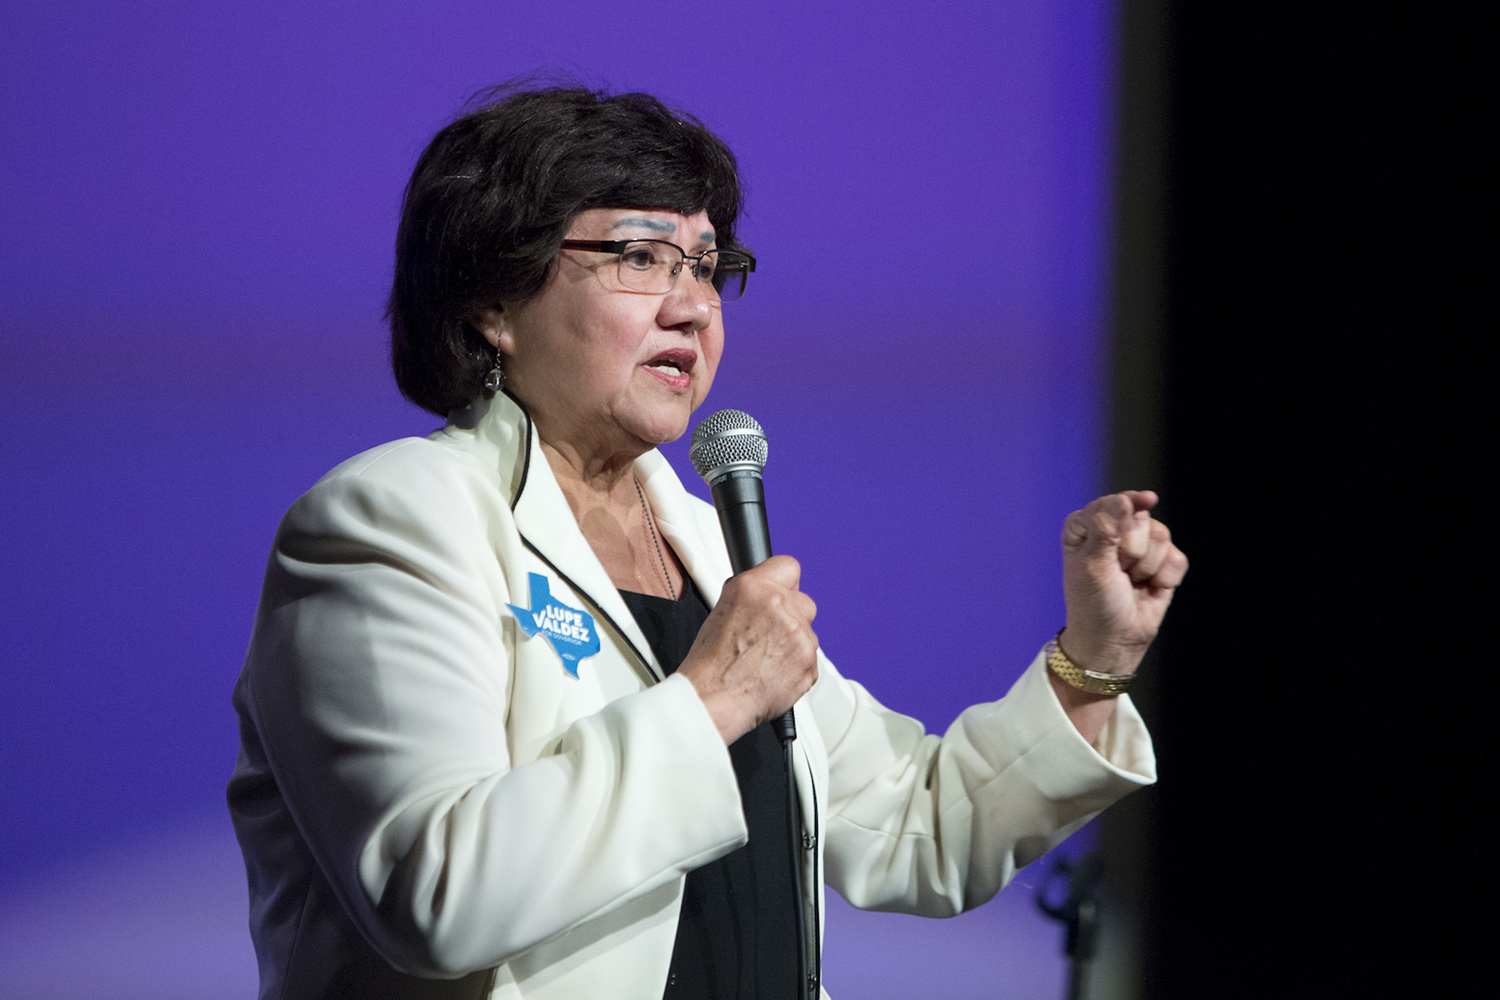 Democratic candidate for governor Lupe Valdez's answer to an immigration question cost her the endorsement of Jolt Texas, a group aiming to turn Texas blue.